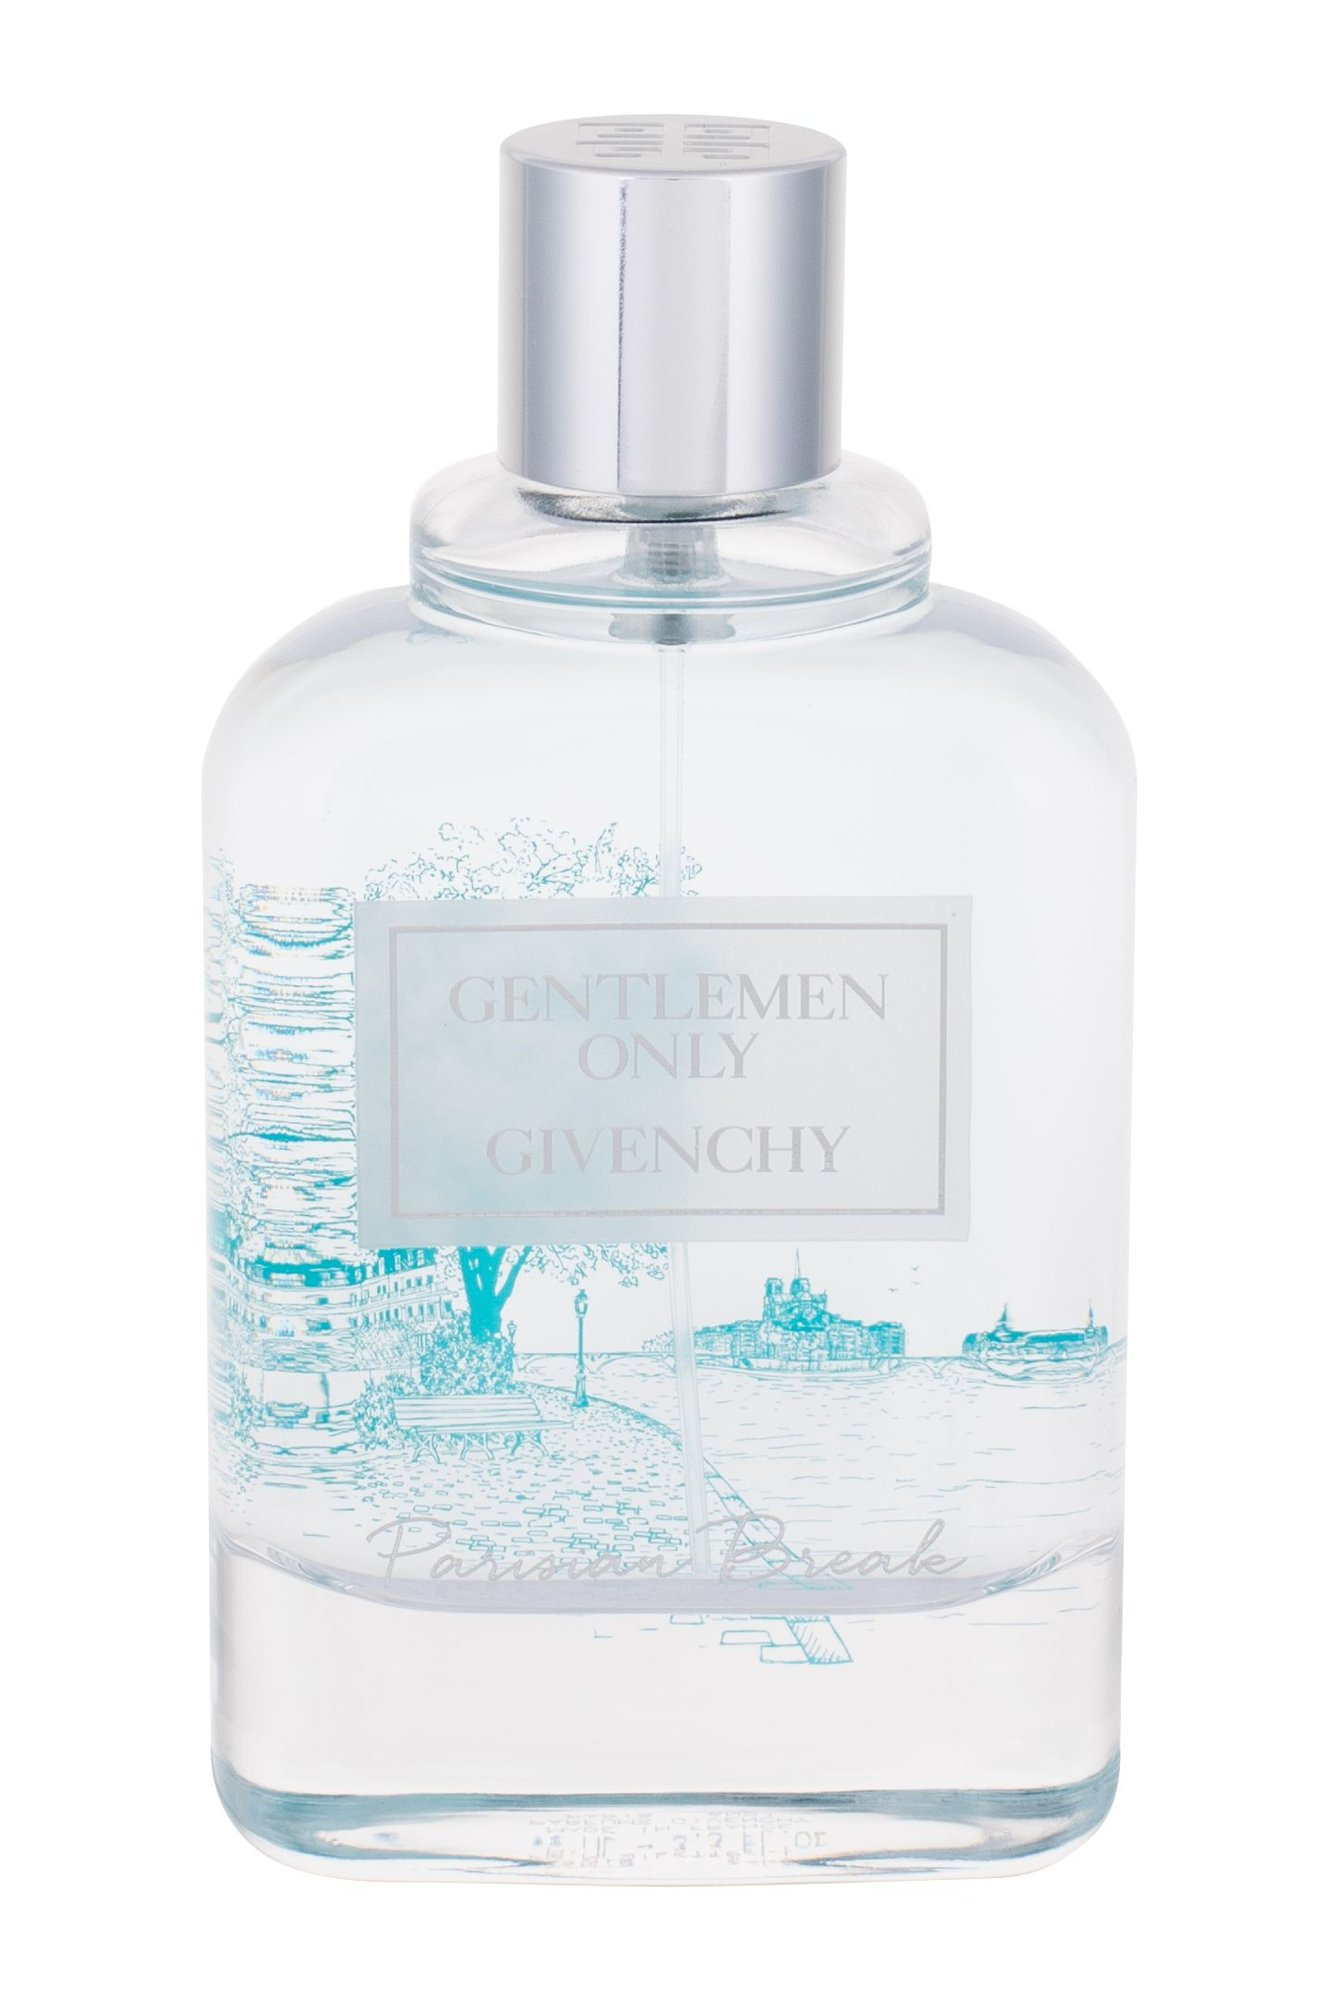 Givenchy Gentlemen Only Parisian Break, Toaletná voda 100ml